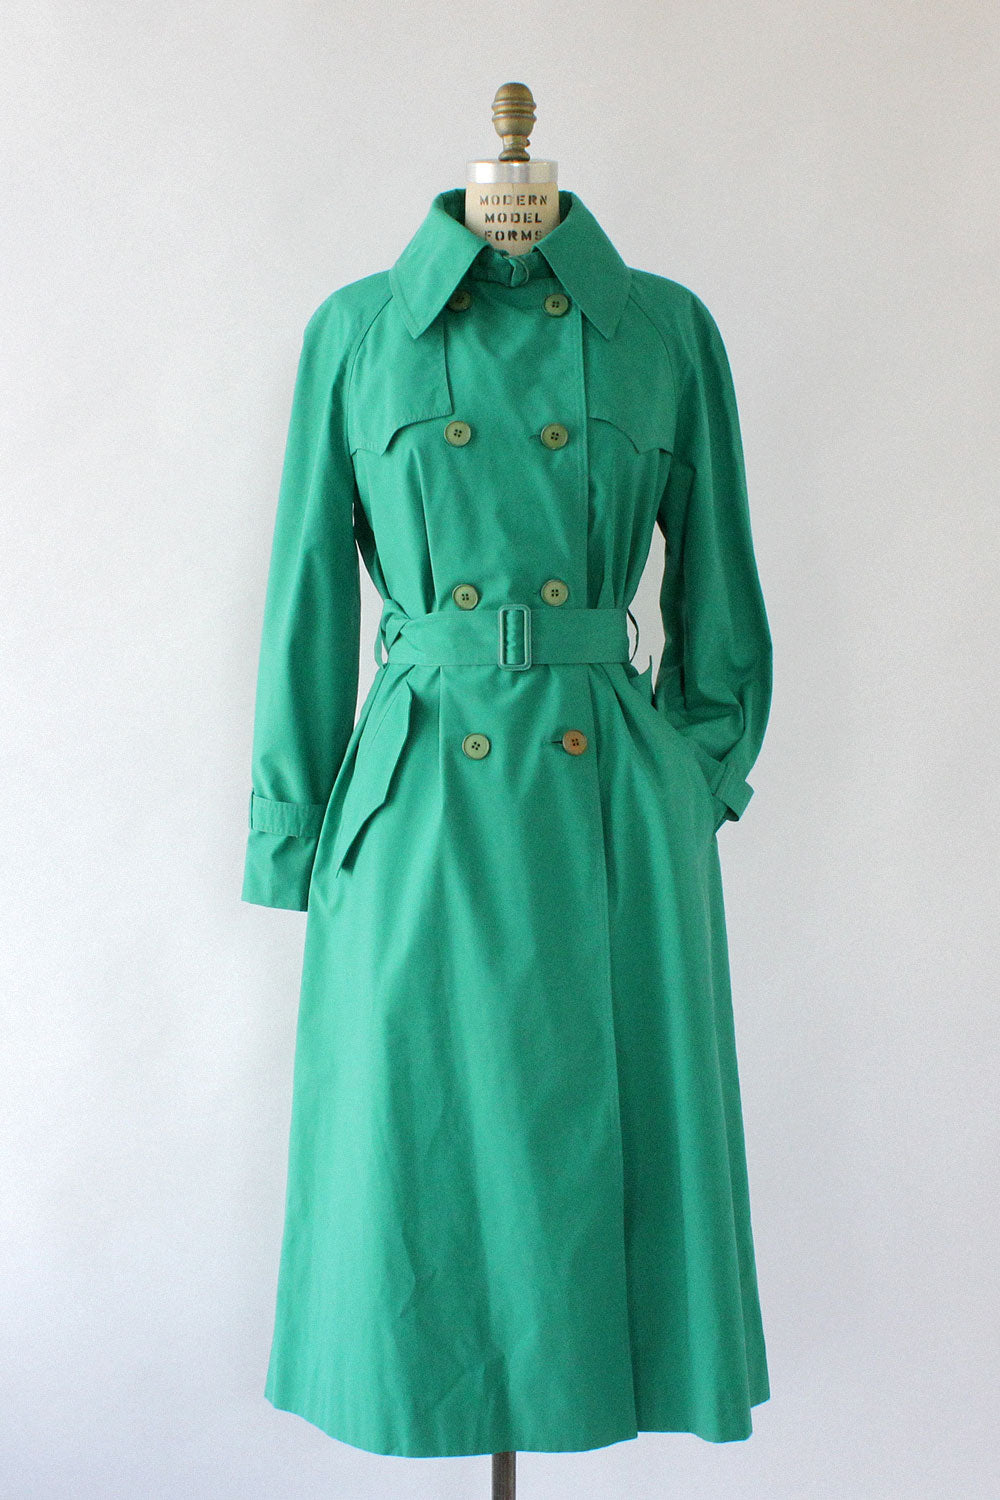 Clover Green Trench Coat M/L